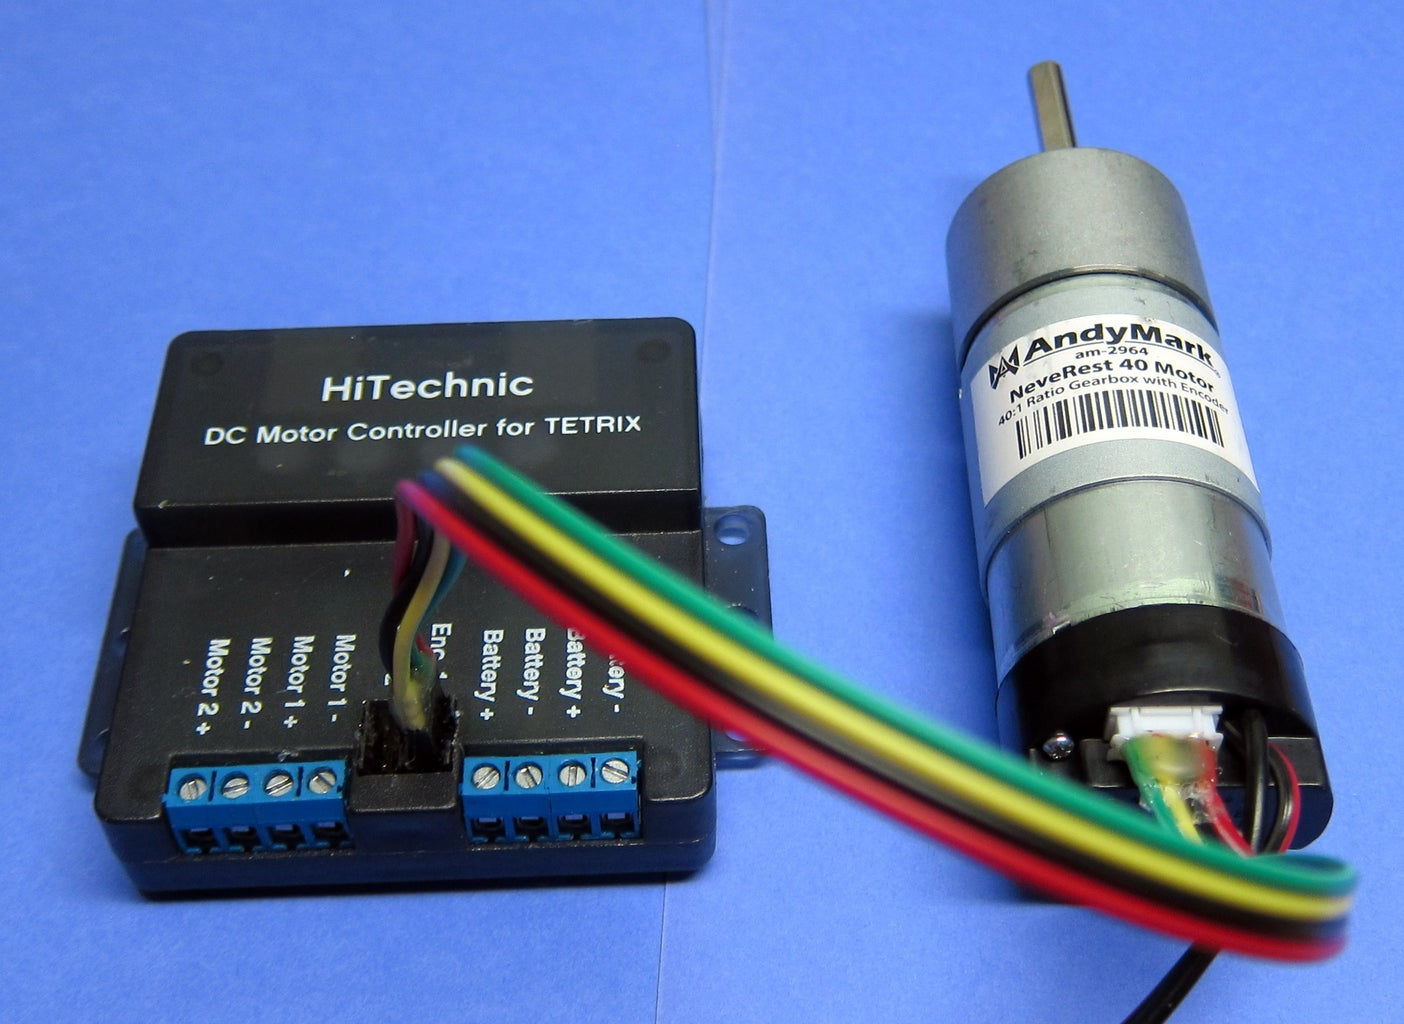 FTC - Encoder Cables for AndyMark NeveRest Motors